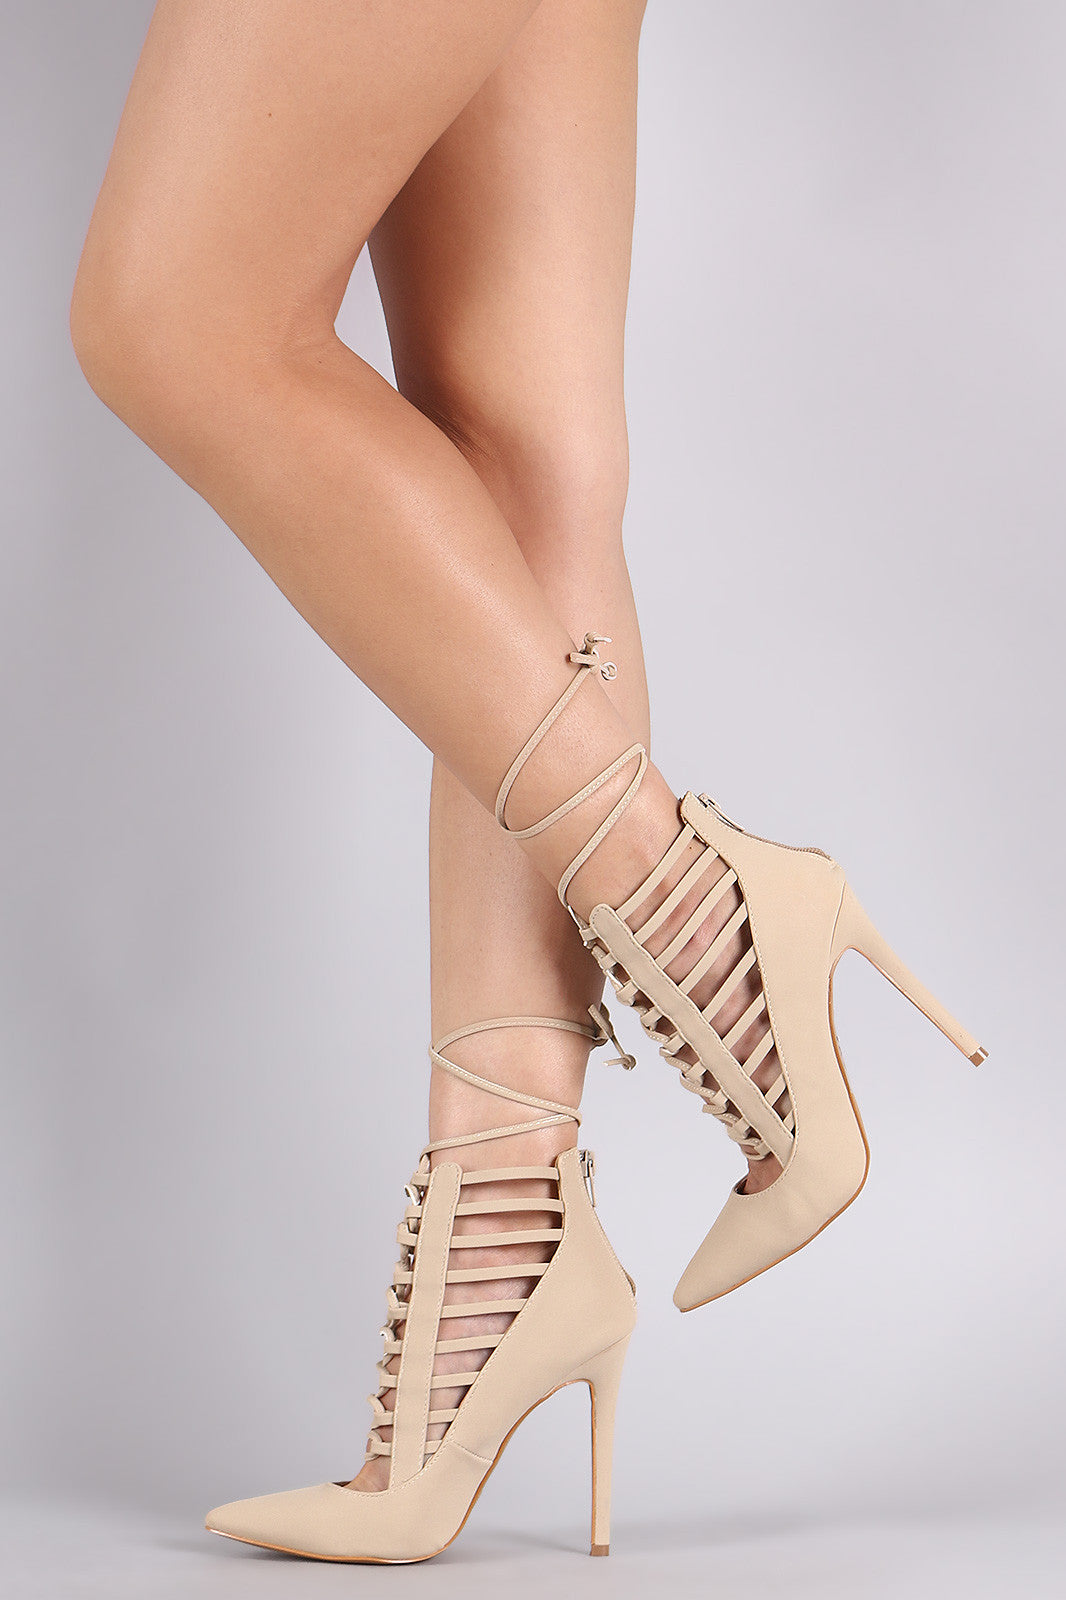 Shoe Republic LA Pointy Toe Caged Lace-Up Pump - Thick 'N' Curvy Shop - 3